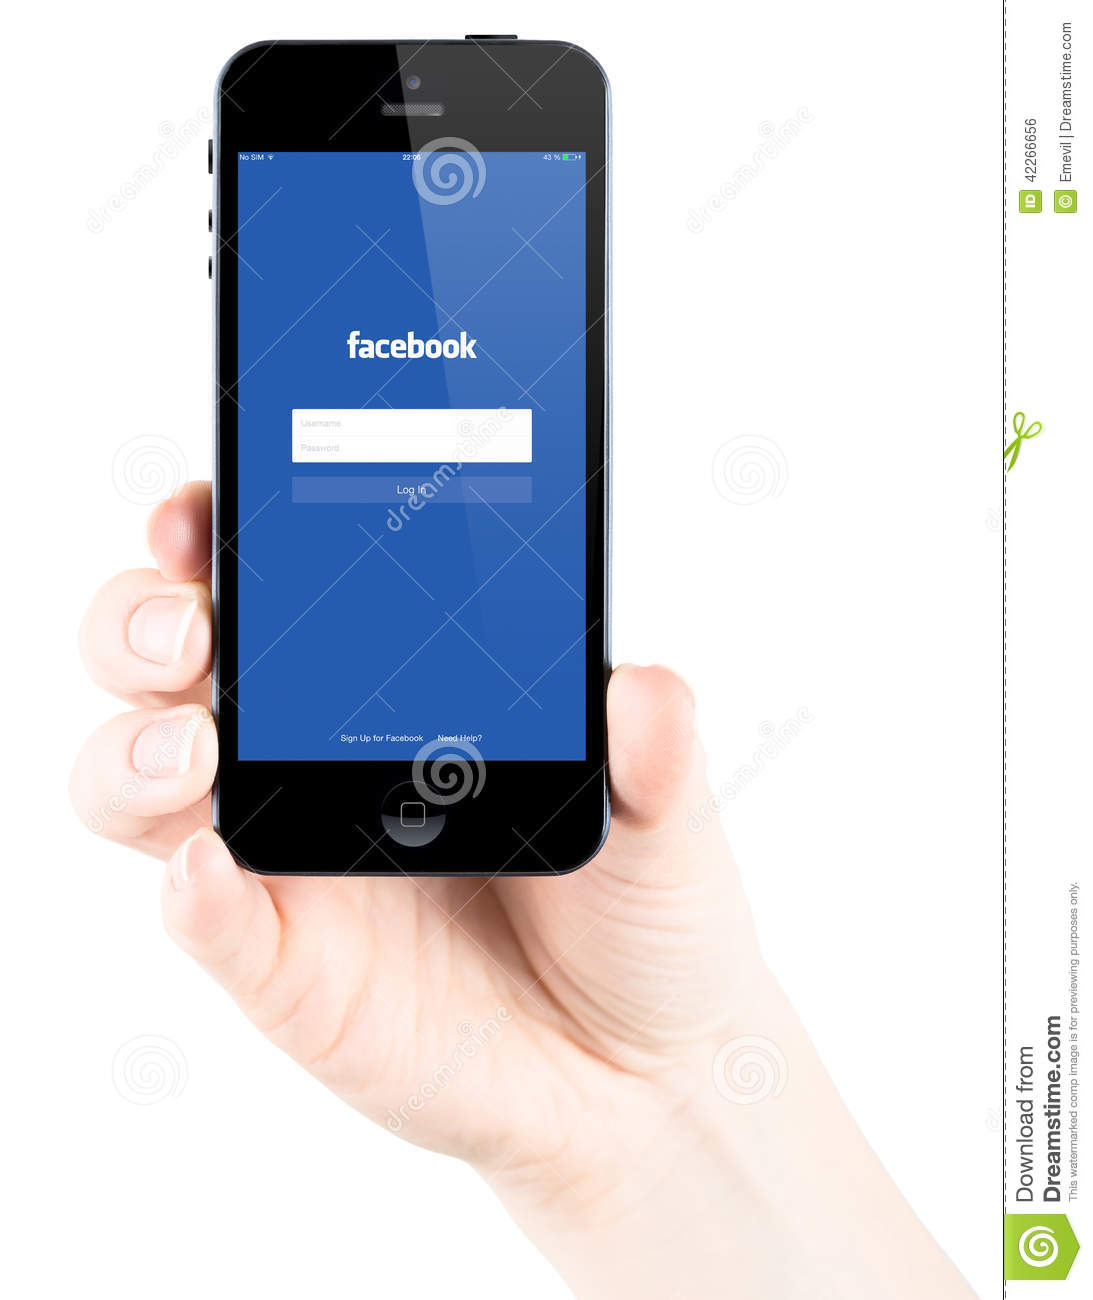 facebook full site iphone login